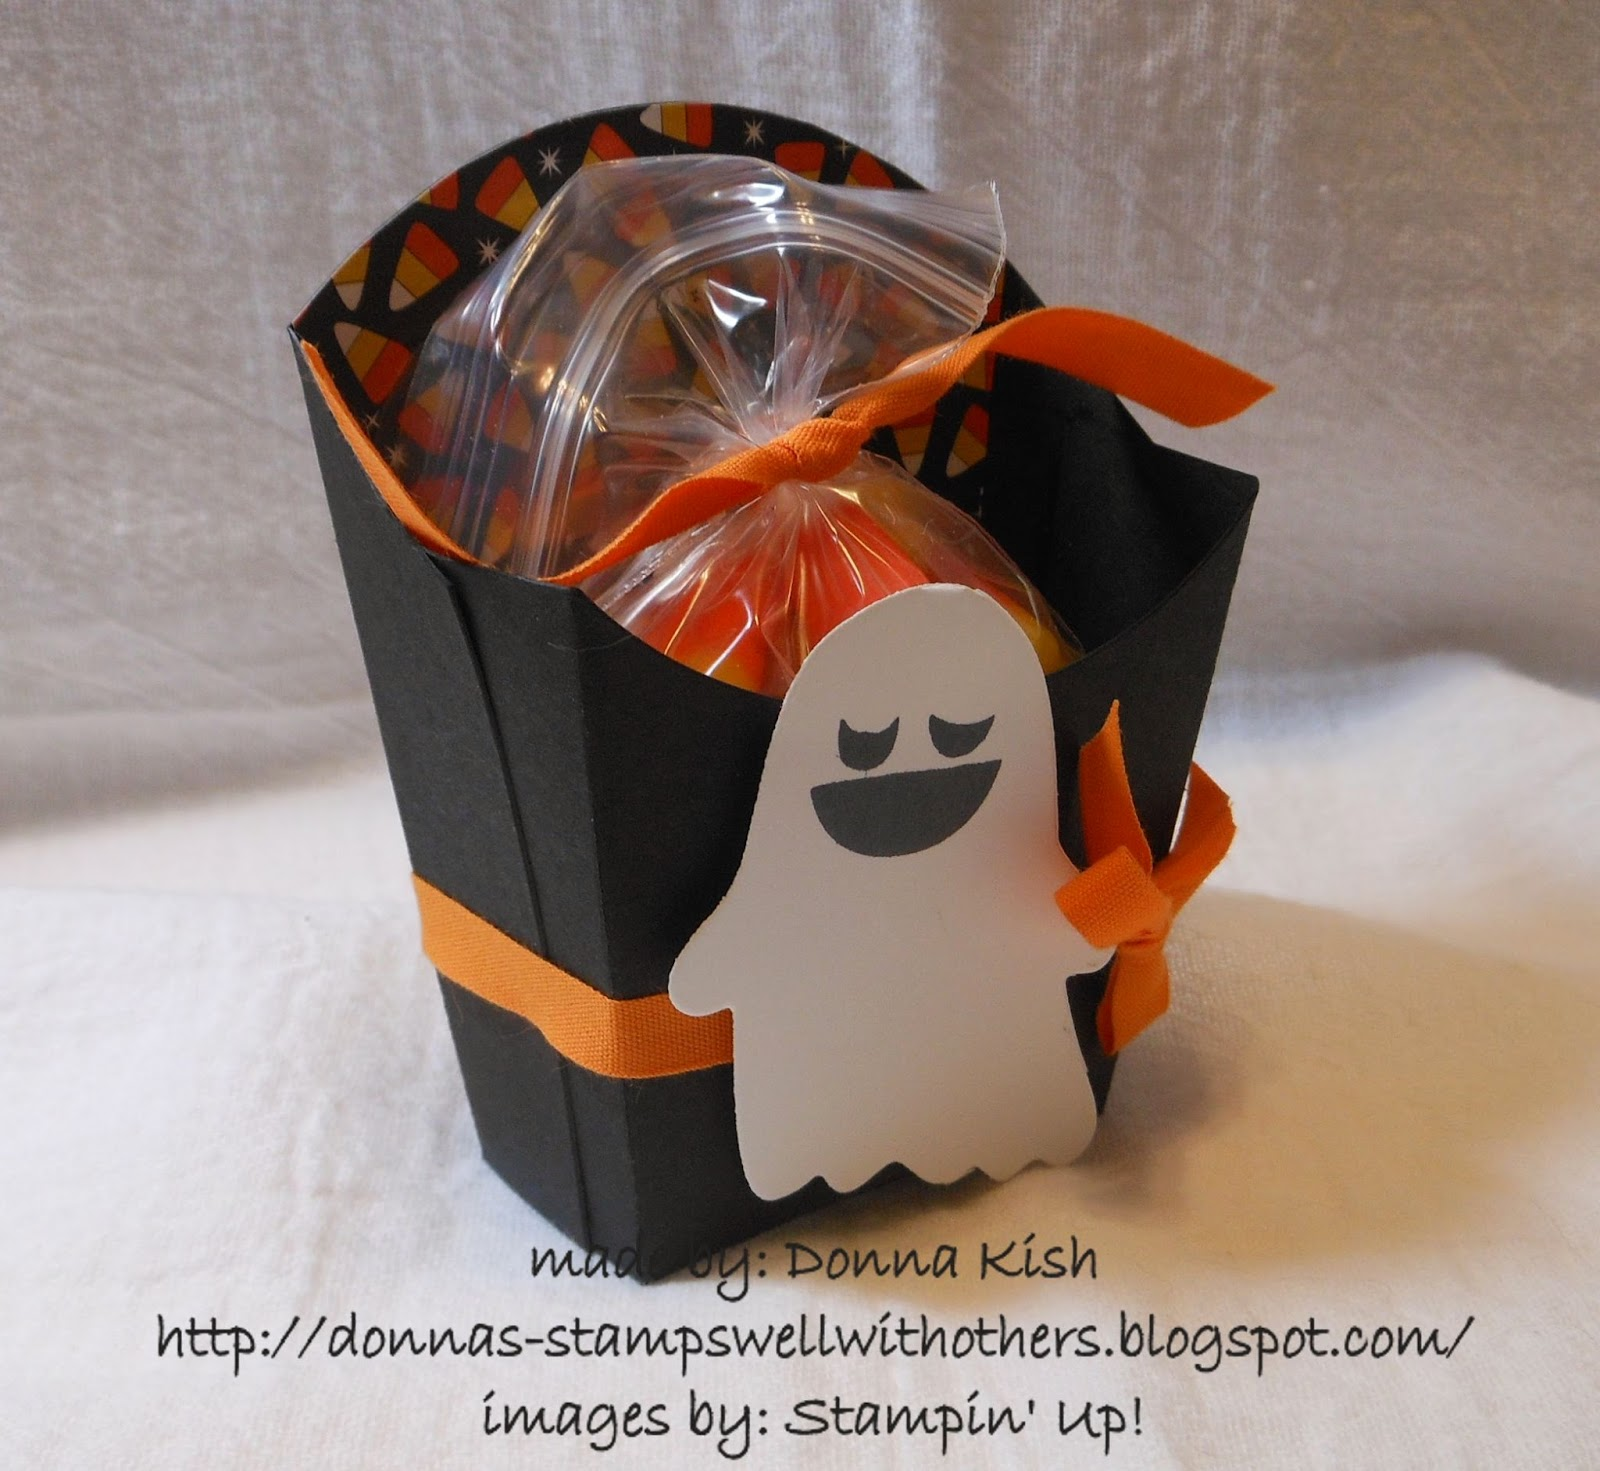 http://donnas-stampswellwithothers.blogspot.com/2014/10/french-fry-candy-corn.html